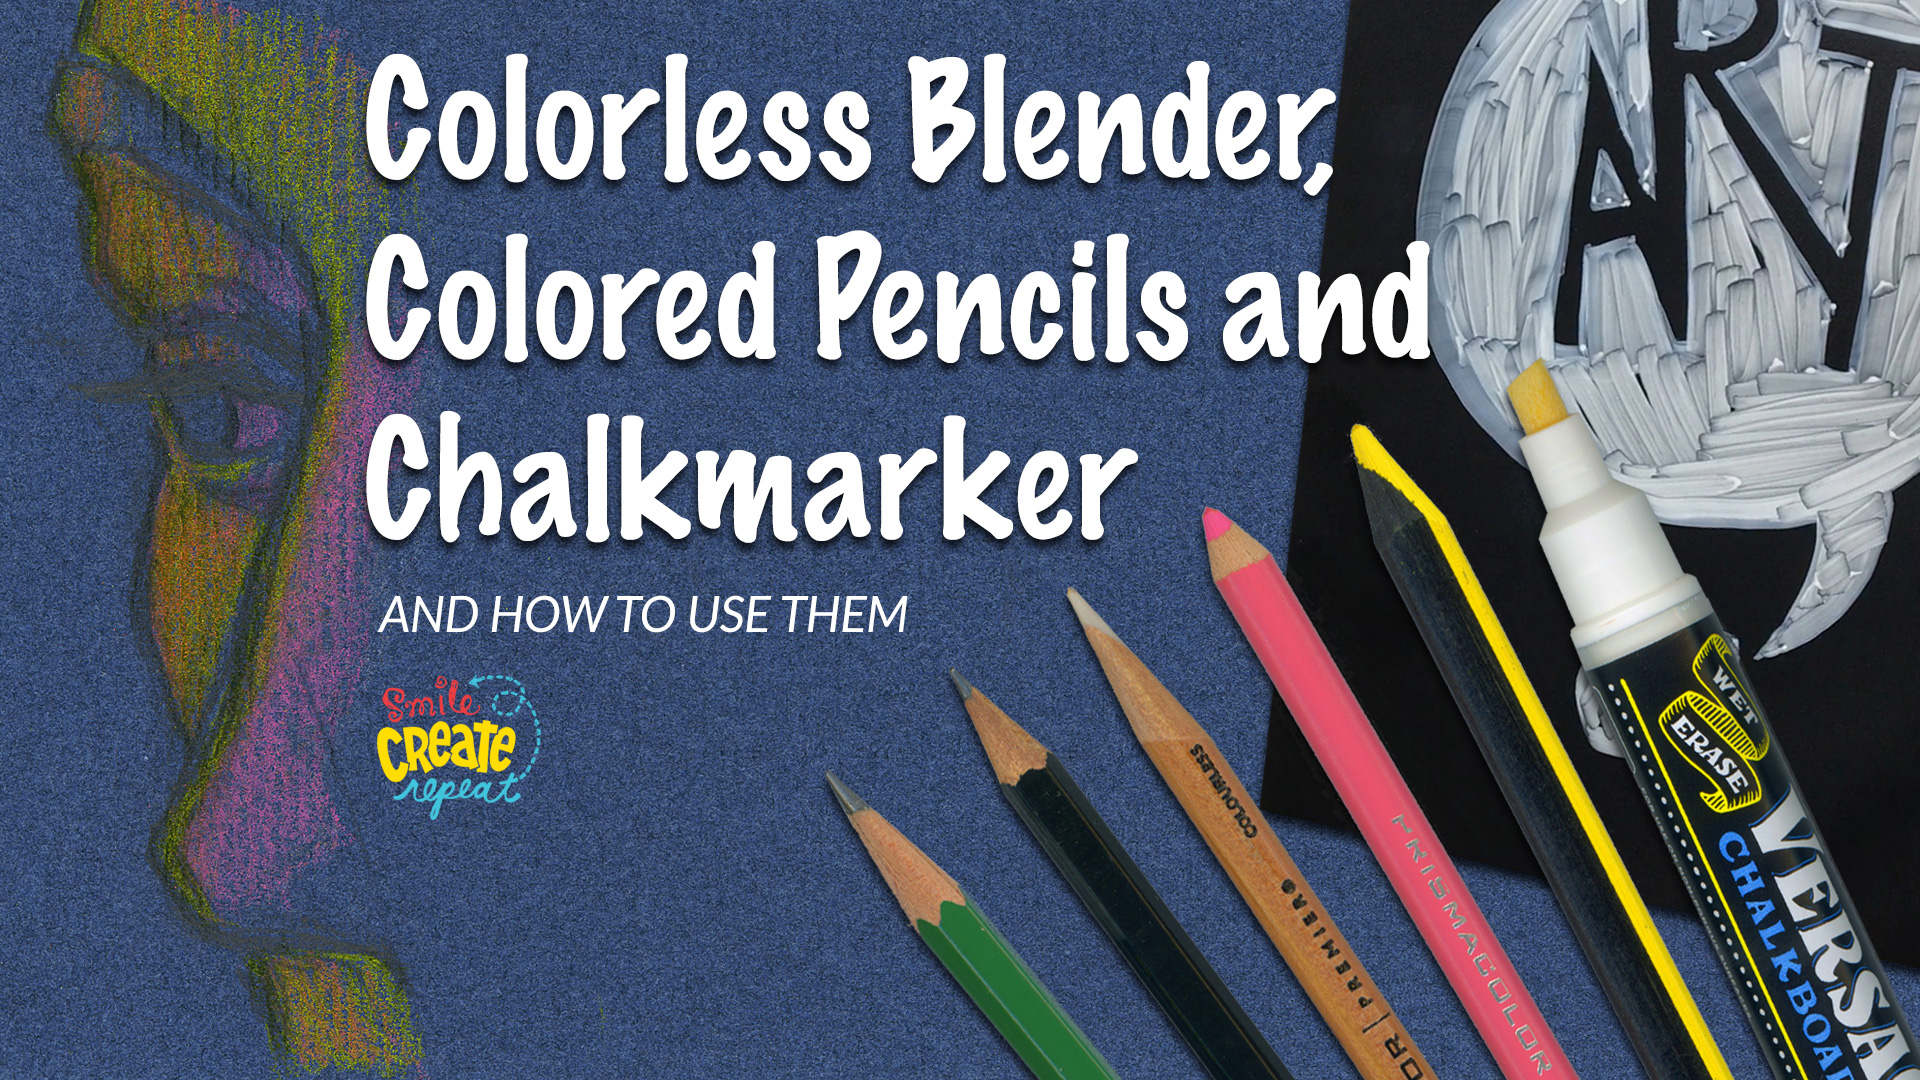 Check out our  YouTube demo  to preview a past colored pencil demo